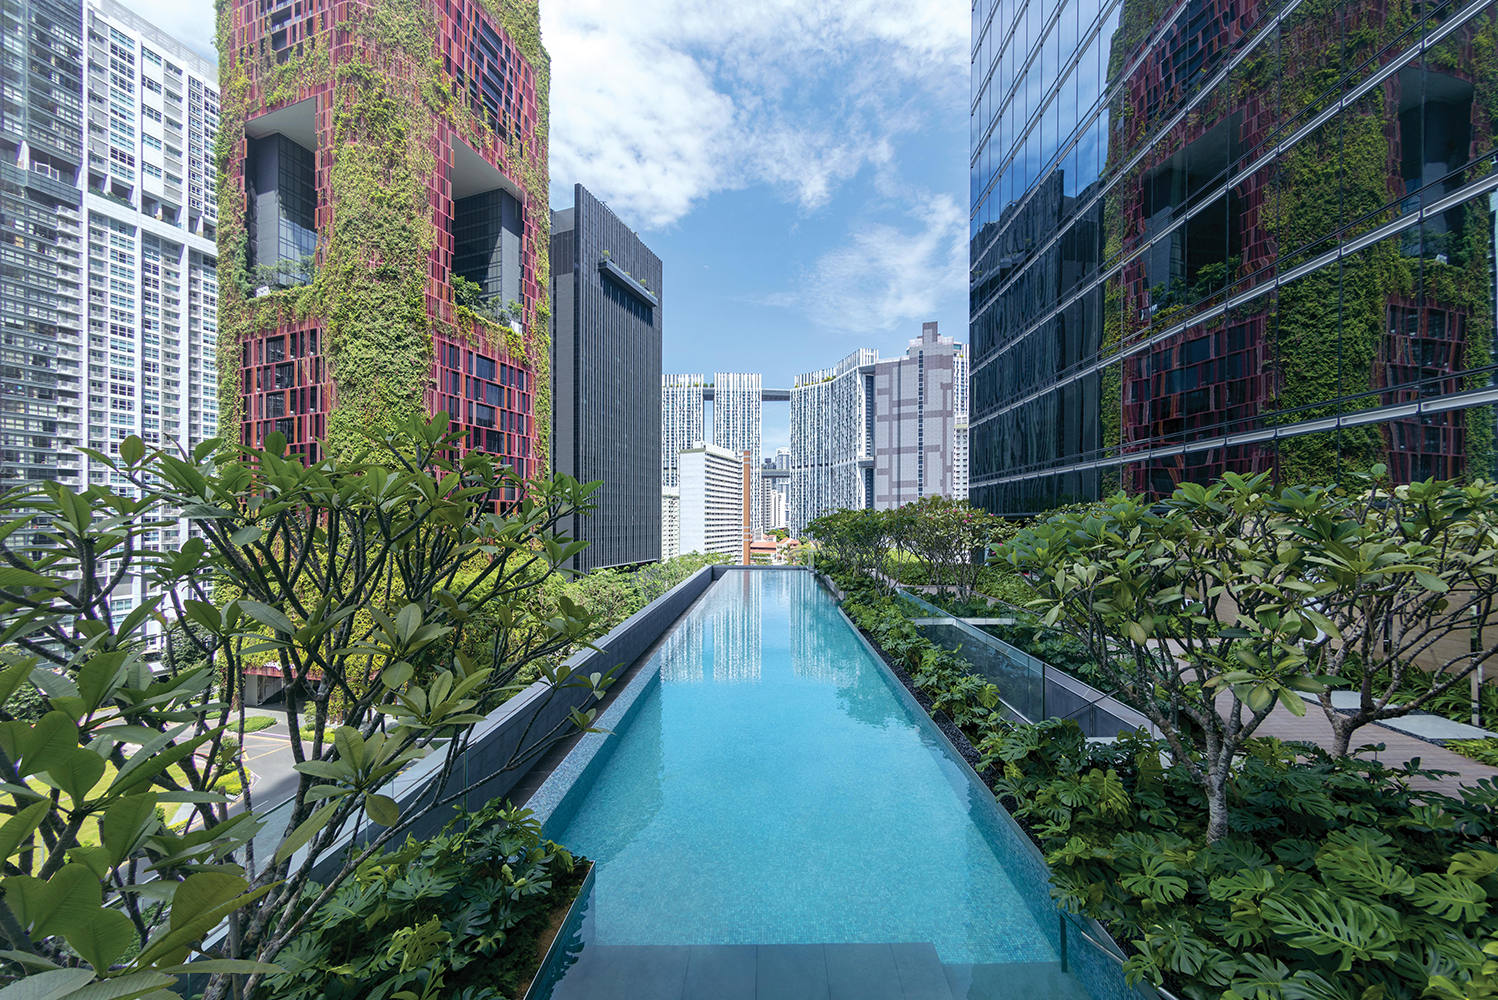 Located in Tanjong Pagar, the hotel will be just 20 minutes from Singapore's Changi Airport.